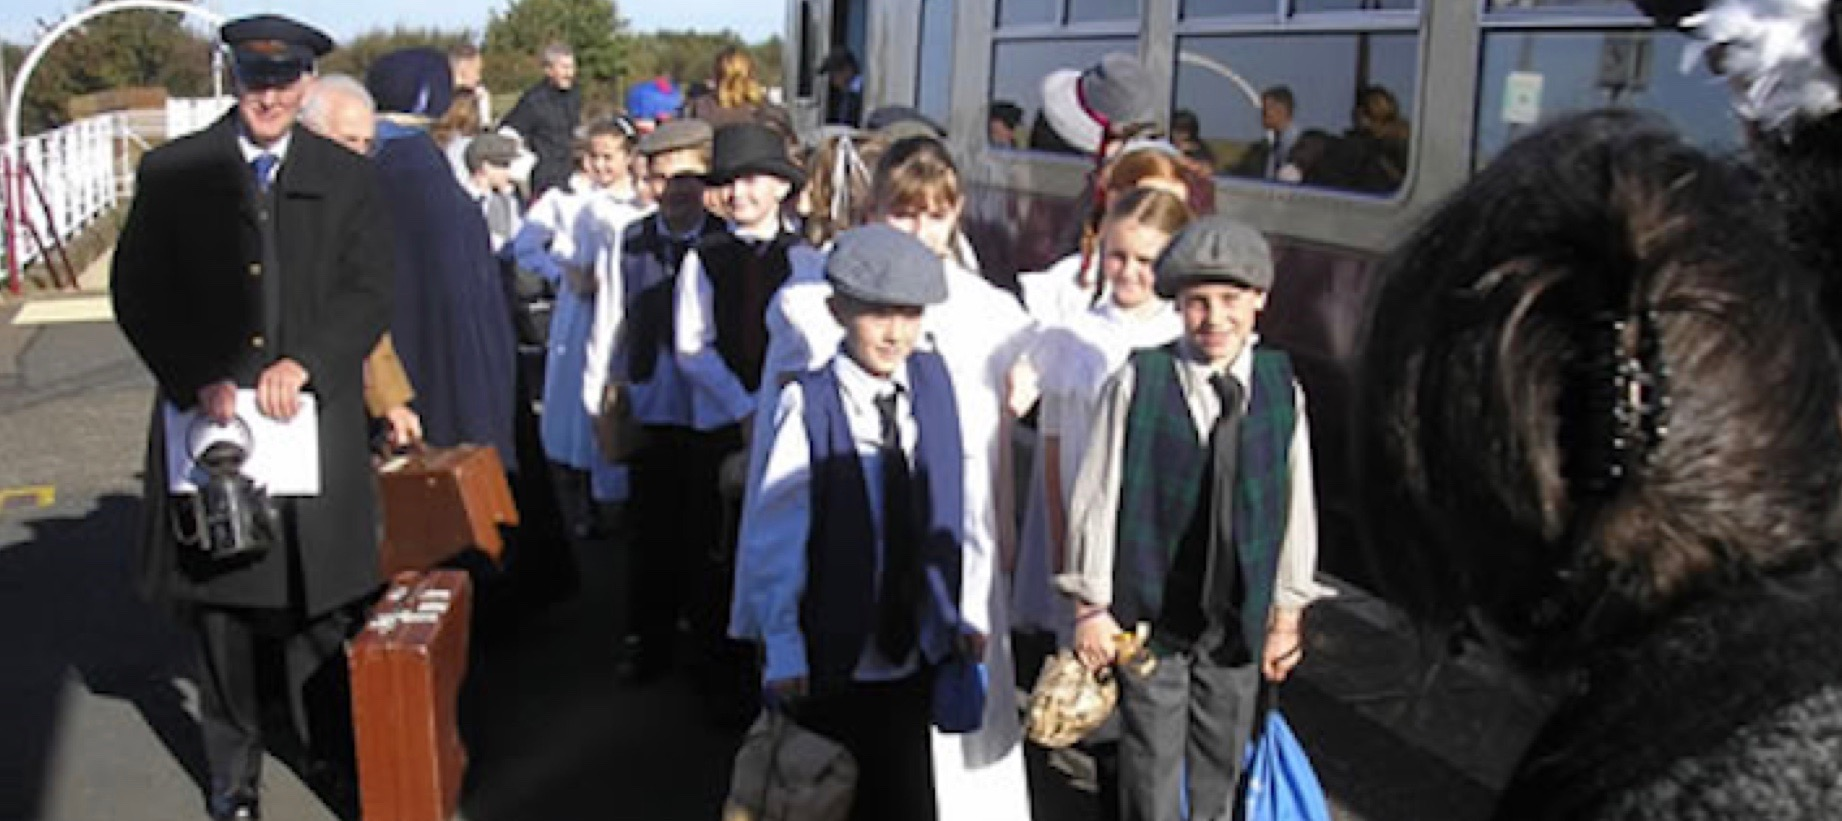 Children from schools in both Dumfries & Galloway and South Ayrshire council areas travelled in Victorian costume to meet each other in a celebration of the 130th anniversary of the line in 2007